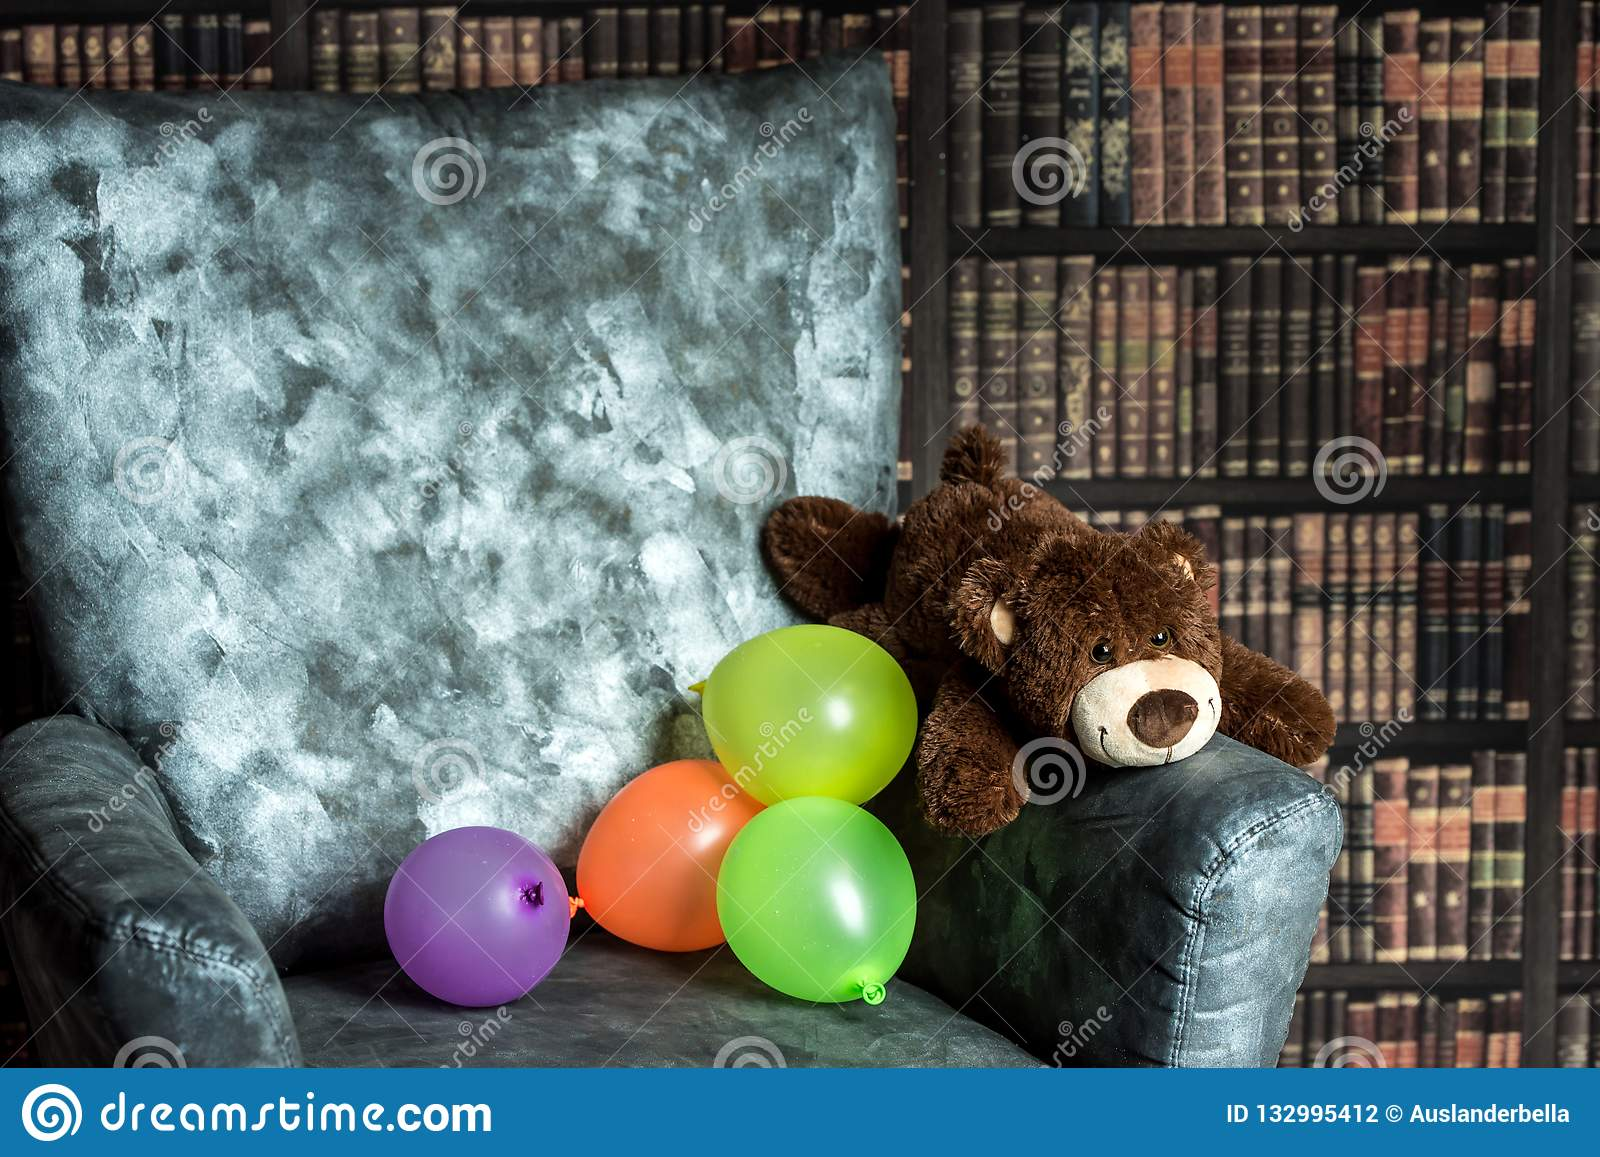 Plush Teddy Bear On The Armchair In The Room With Books Stock